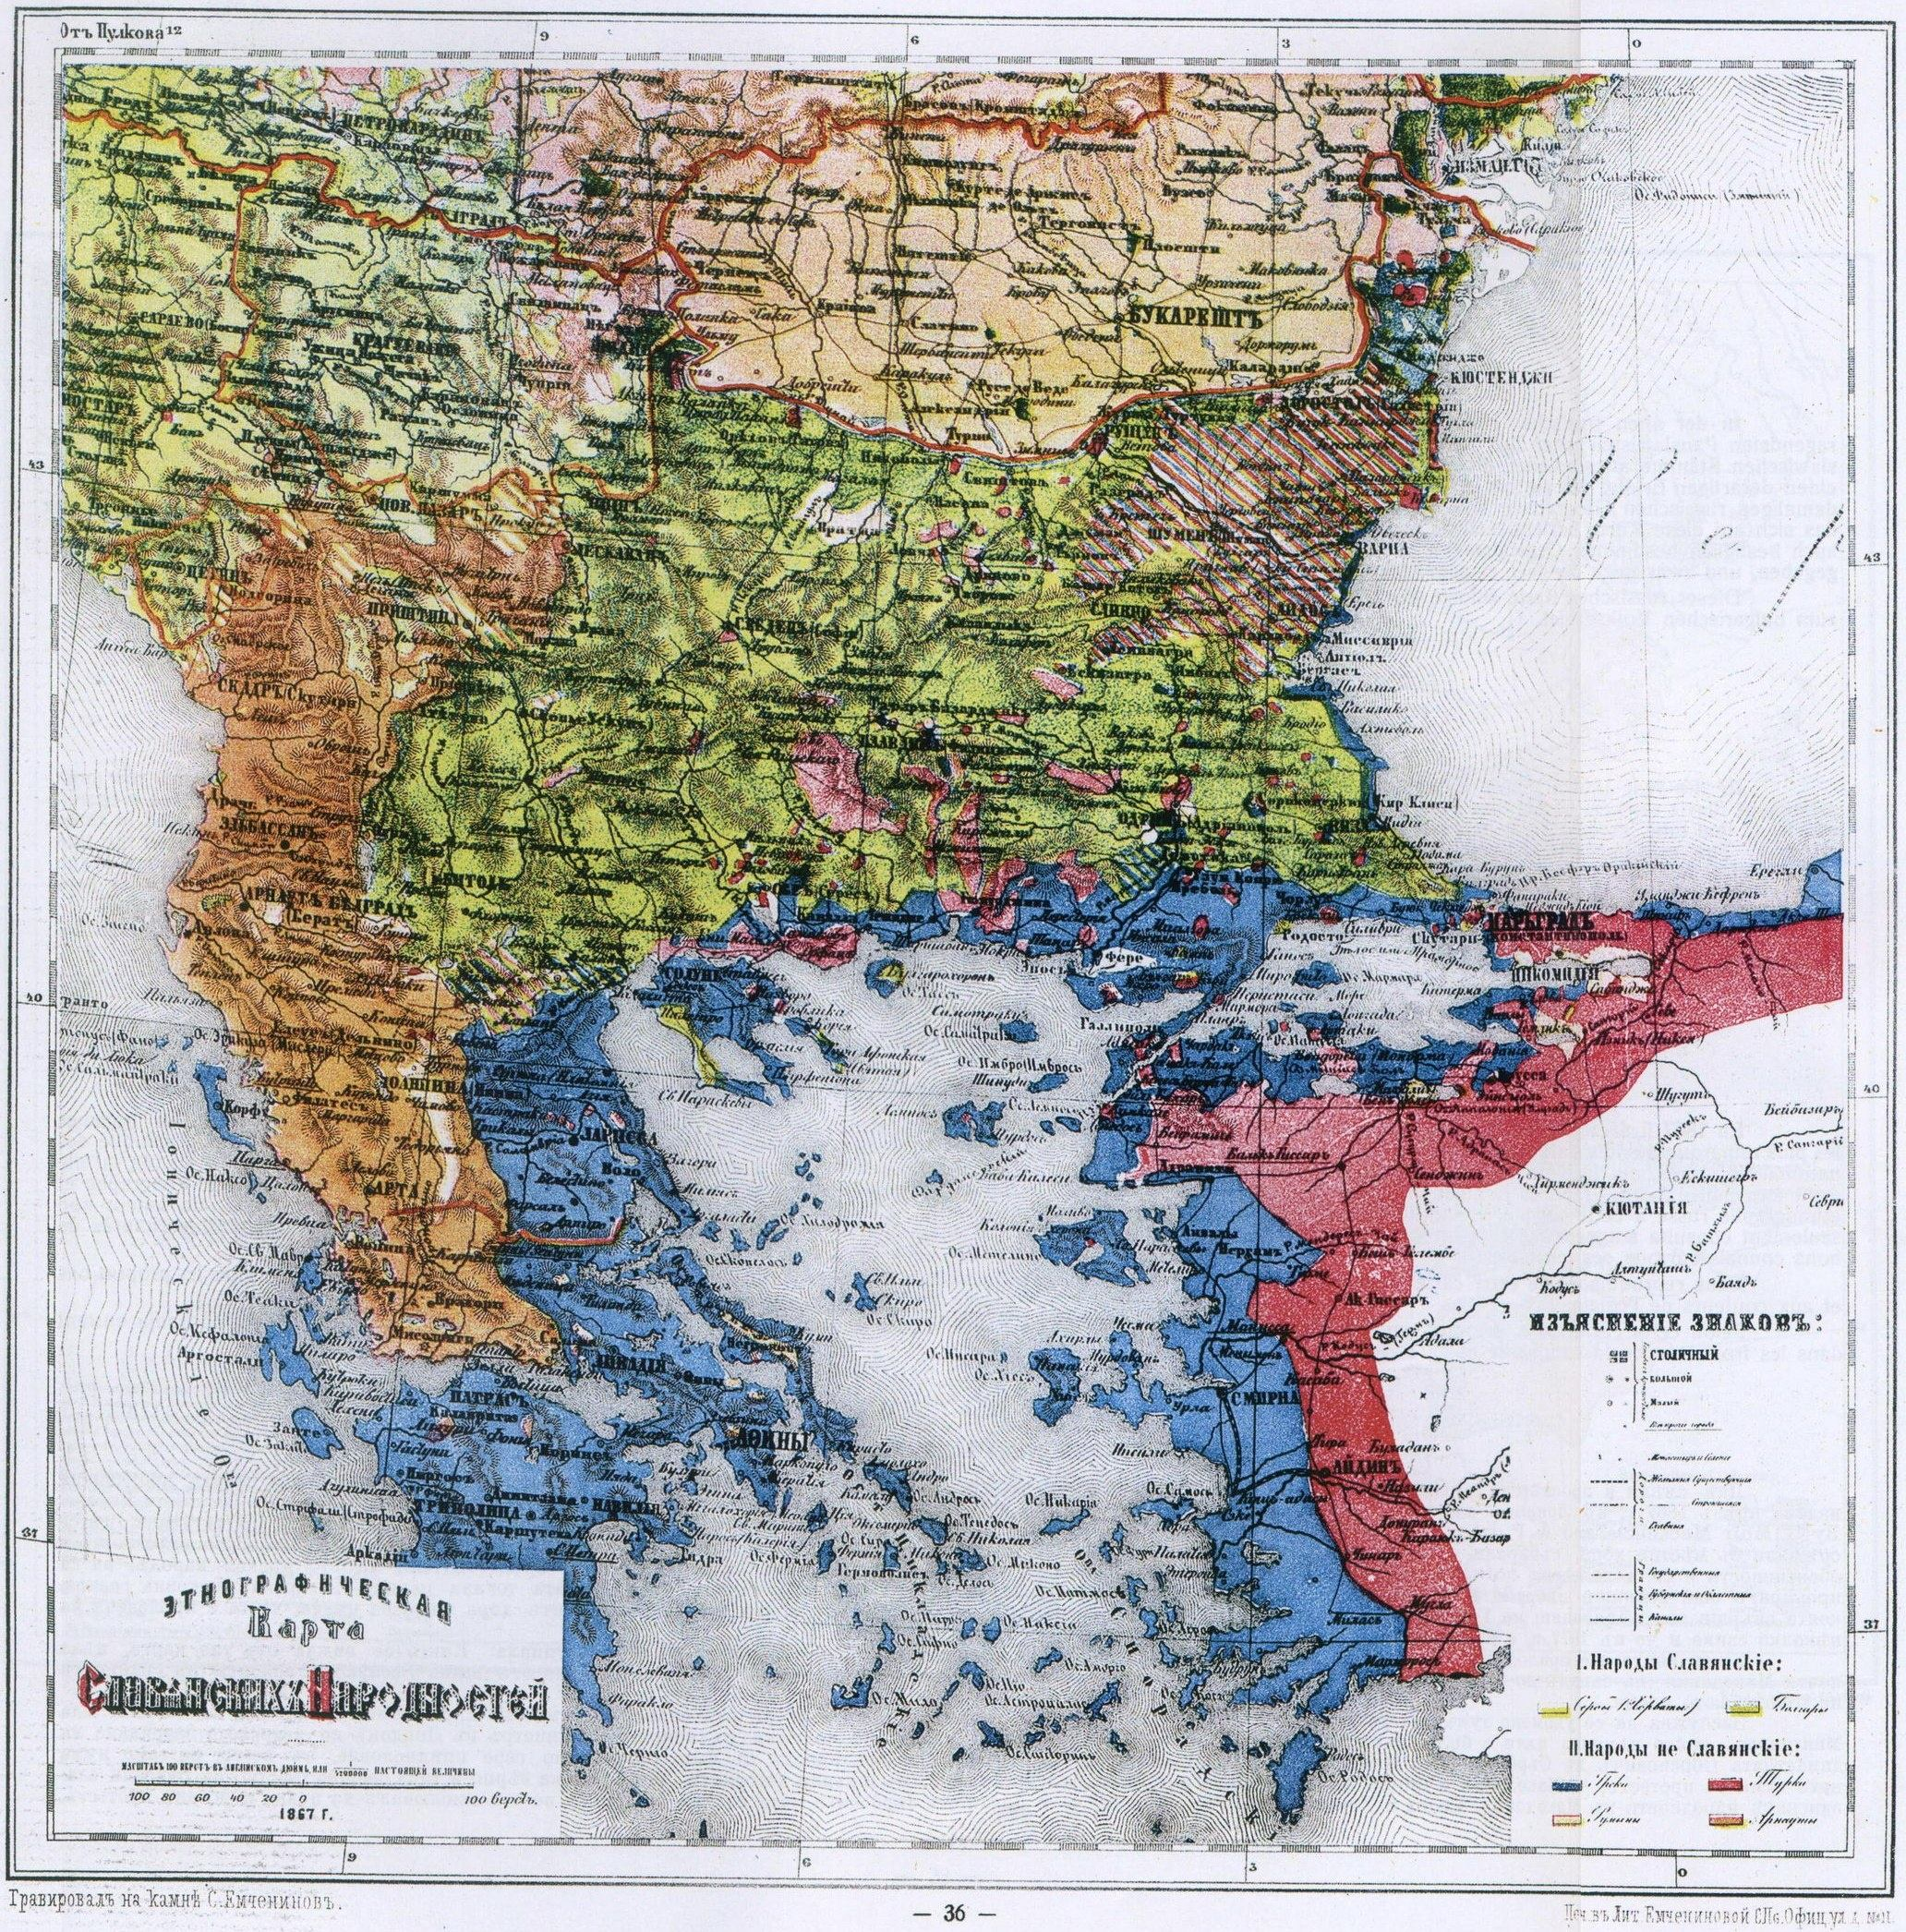 Is It True That Before 1900 There Were More Ethnic Greeks In Asia